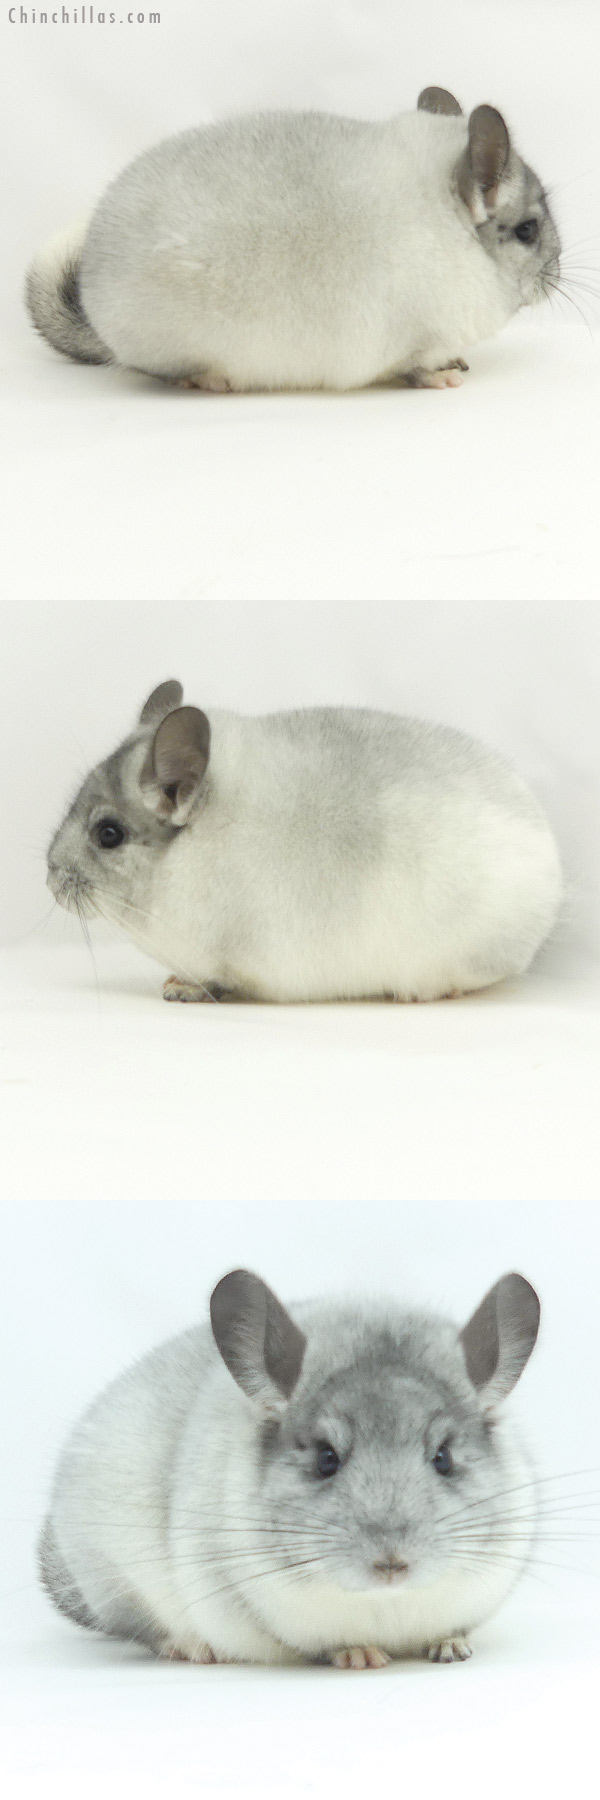 20129 Blocky Herd Improvement Quality White Mosaic Male Chinchilla